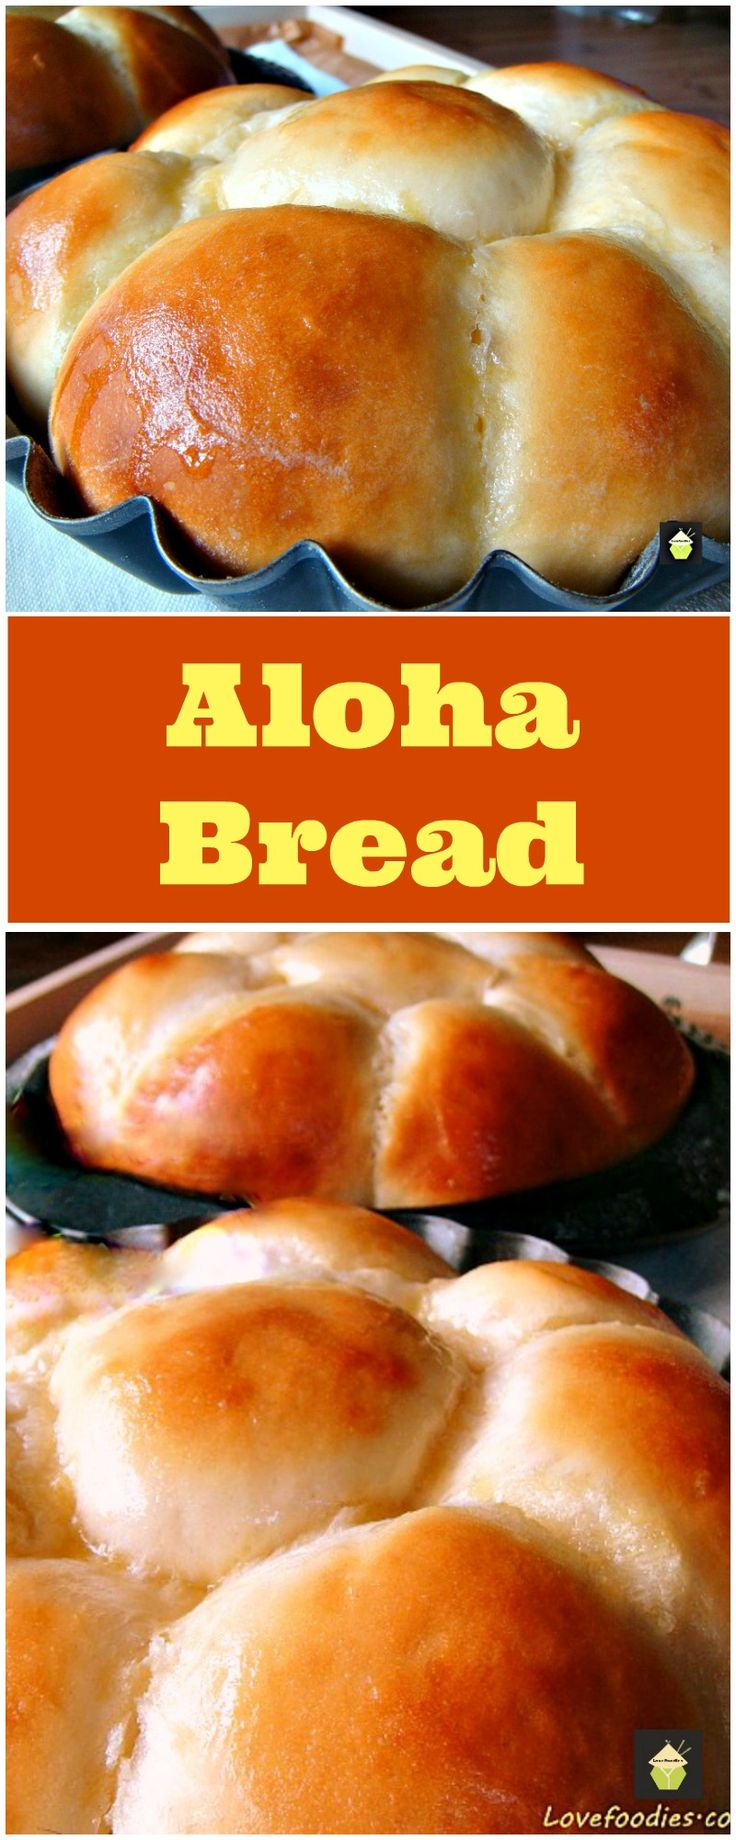 Say Aloha To American Girl S Newest Historical Character: ALOHA BREAD! I Made The Recipe Super Easy For You, The